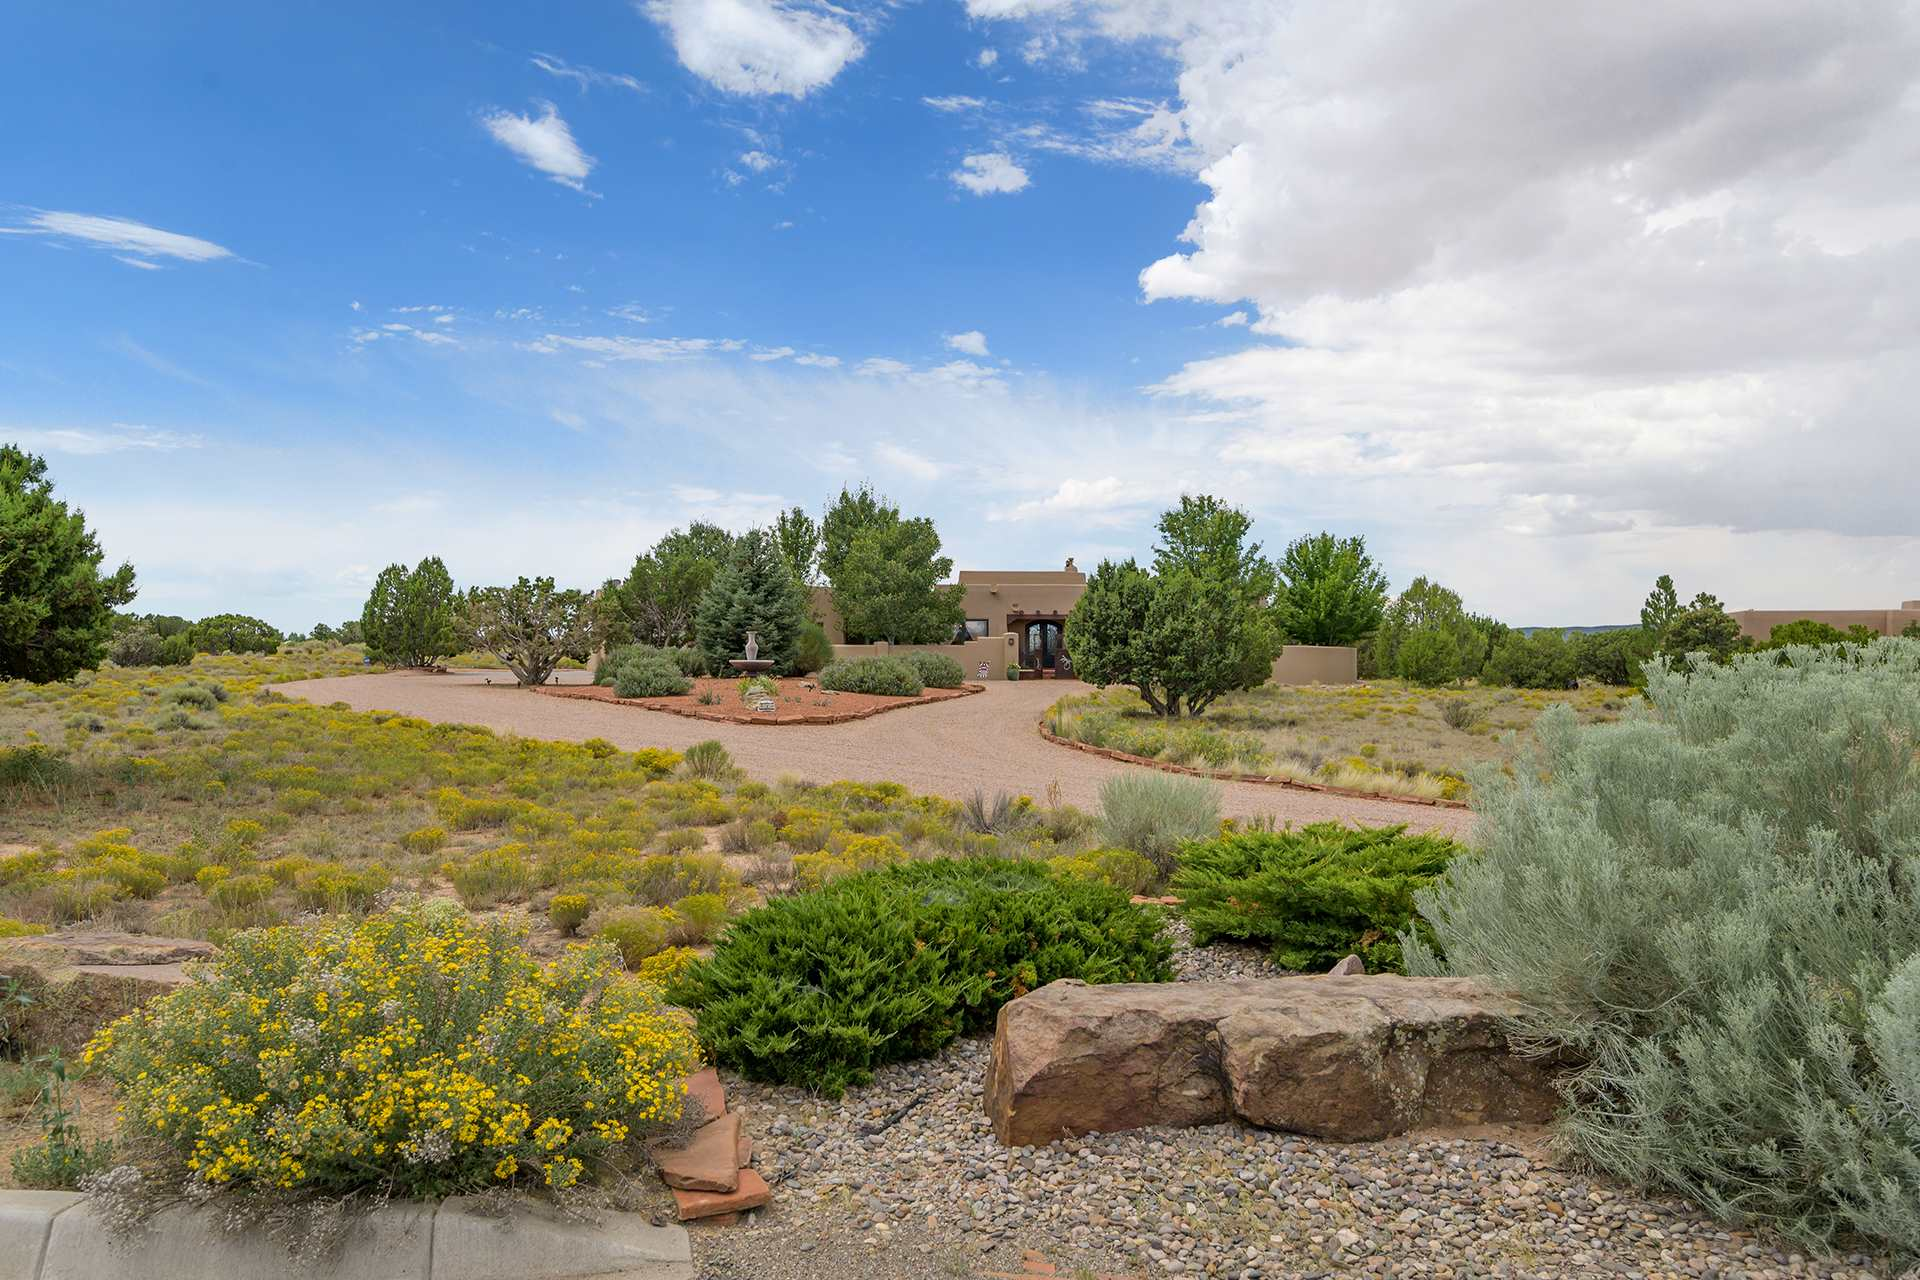 In the market for serenity? Want that spectacular sunrise and sunset? Sit back and take in the stunning big sky views of the Jemez and Sangre de Cristos from this single level custom home. Conveniently located in the lovely gated community of La Villa Escondida, you are just minutes from the plaza and easy access to 599.  This equestrian property is nestled on 2.92 acres. Built with energy efficient Rastra construction, custom details are everywhere.  The circular drives leads to a grand gated entry into the professionally landscaped courtyard. Step into the entry foyer and take in the mountain views from the spacious great room and formal dining room.  The hand troweled plaster walls, stone floors along with high ceilings, vigas and nichos make a quality statement. The grand chef's kitchen beckons with granite countertops, top of the line appliances and walk-in pantry. Settle into the dining alcove which opens to a private covered portal with a fireplace. The perfect spot for alfresco dining. The split floor plan features a grand master suite along with a guest wing ensuring privacy. The master suite has a cozy kiva fireplace, luxurious spa bath, large walk in closet and access to a covered portal. The guest wing features two guest bedrooms with en-suite baths plus a multi- purpose bonus room with fireplace that could easily  be  a den or superior home office.  The attached 3 car garage with work space completes the amenities in this special home.